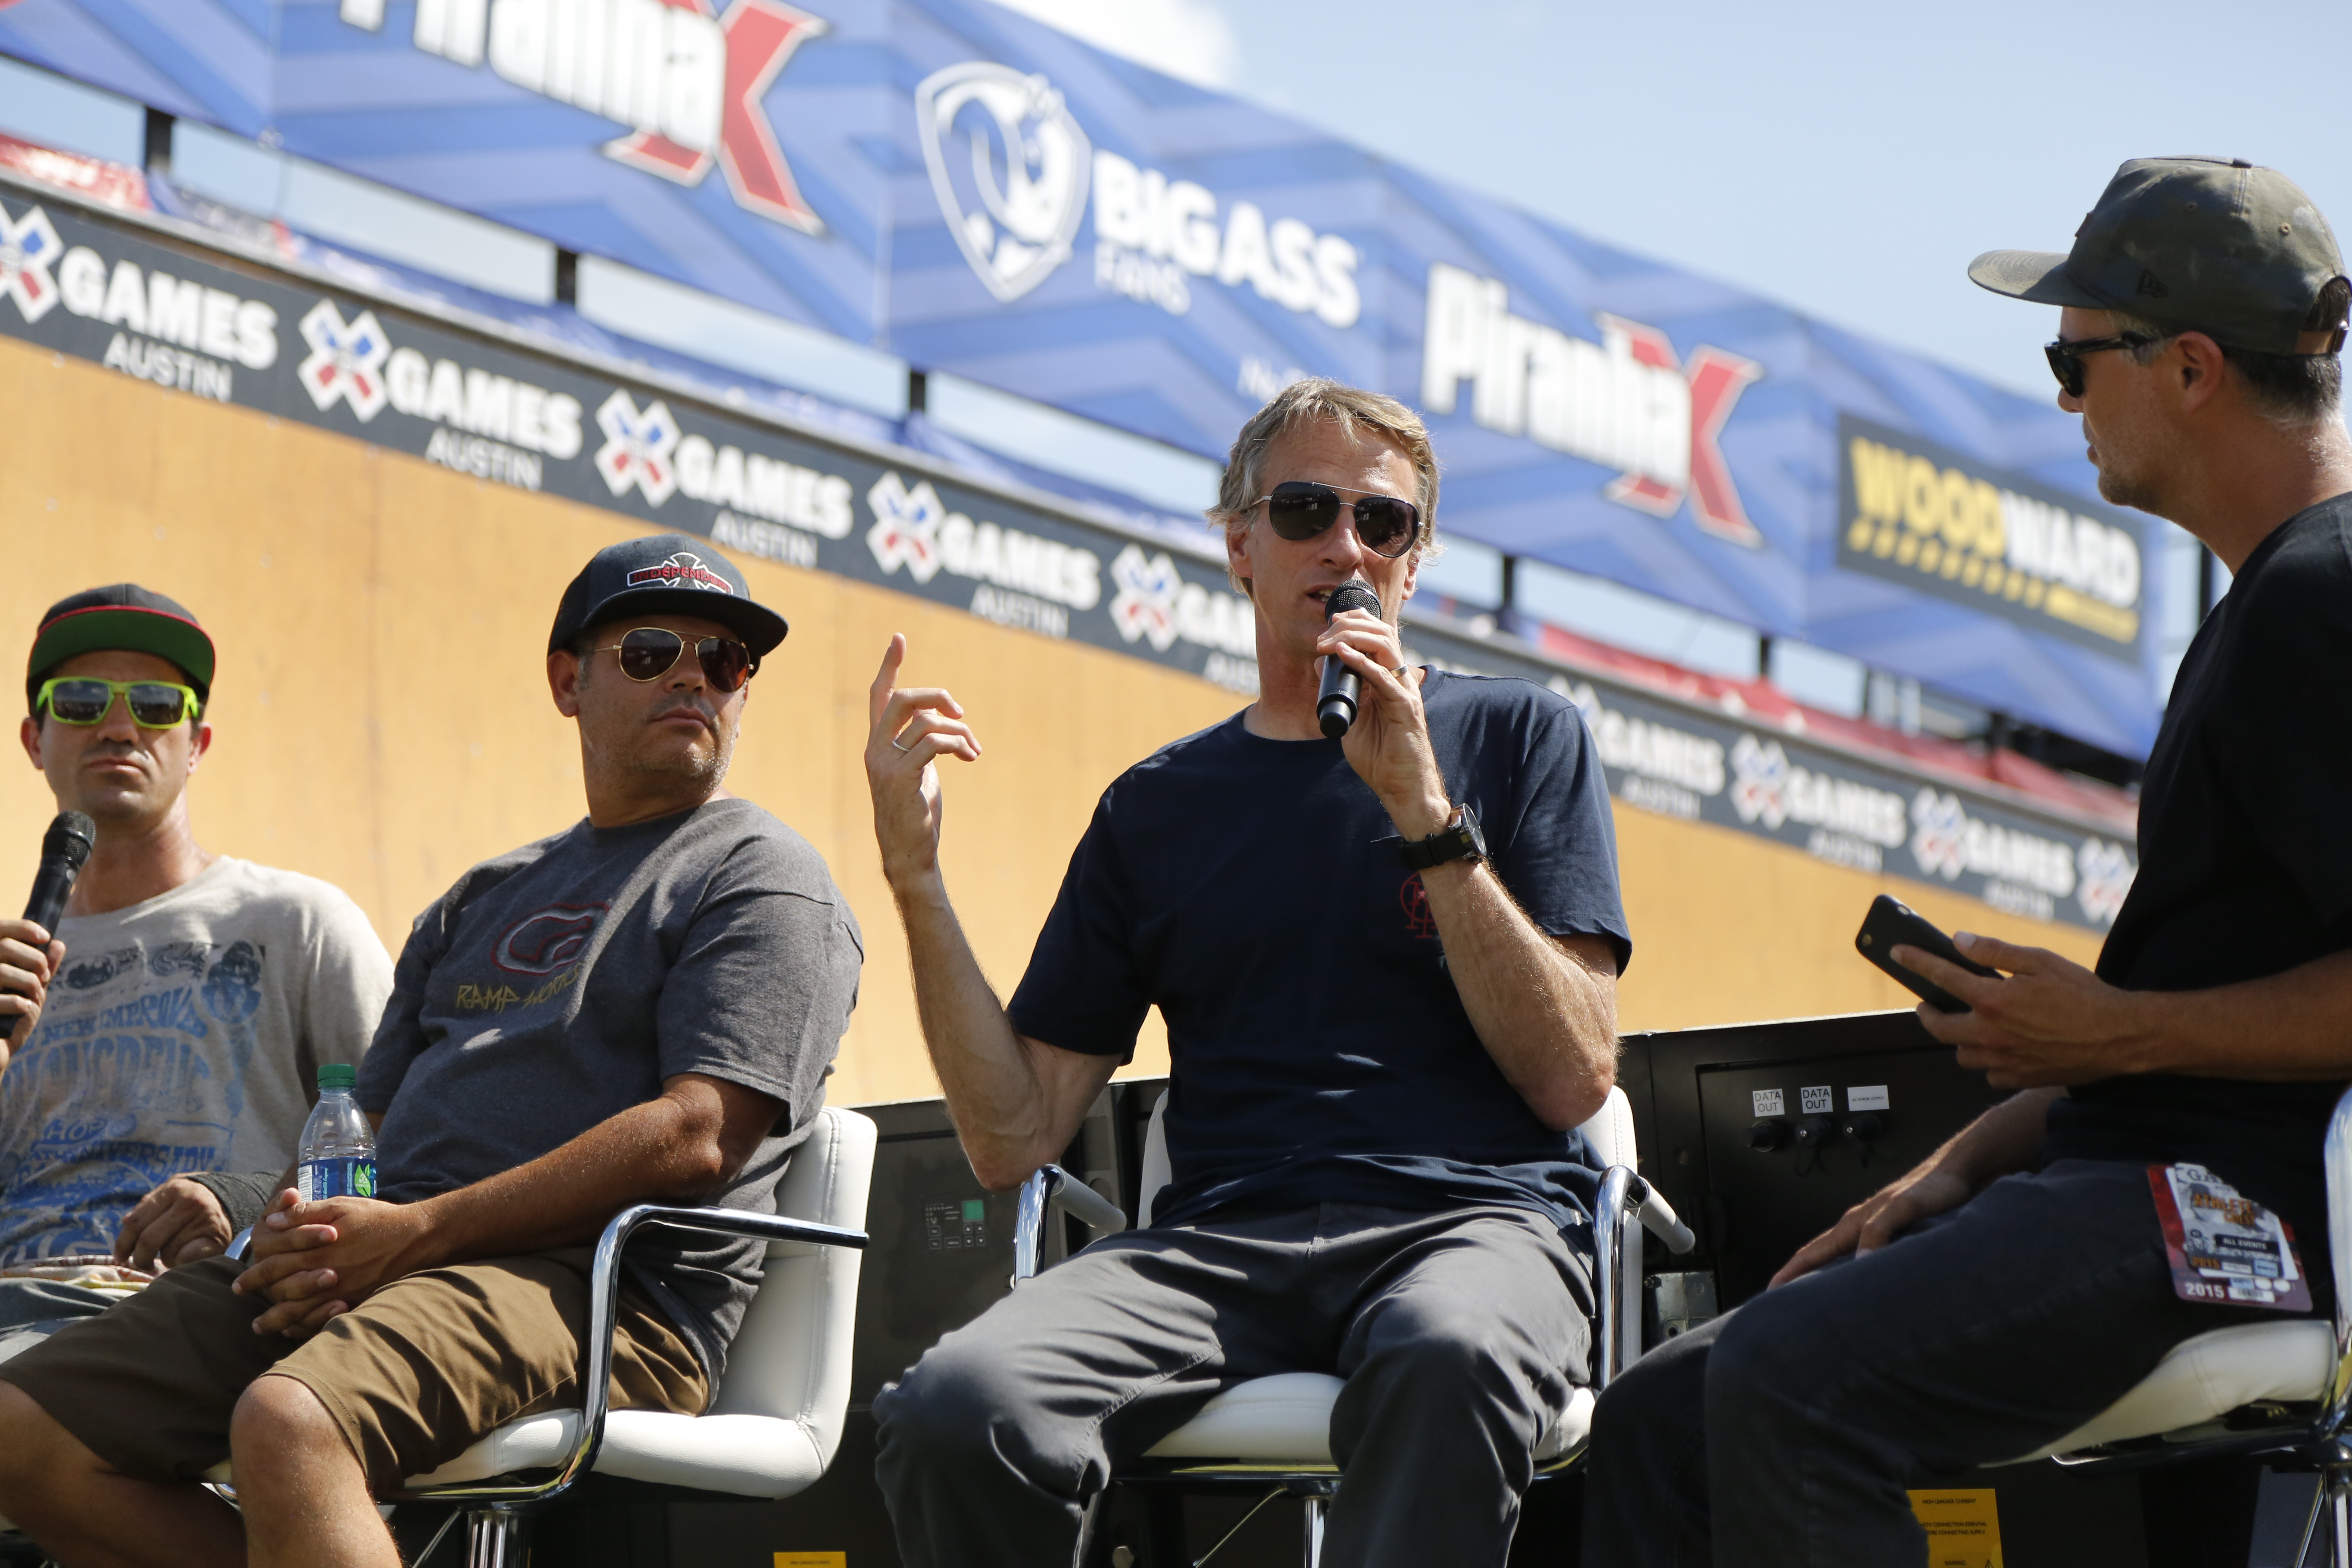 Tony Hawk speaking during the Innoskate panel at X Games panel featuring him, Bob Burnquist and Brian Harper.